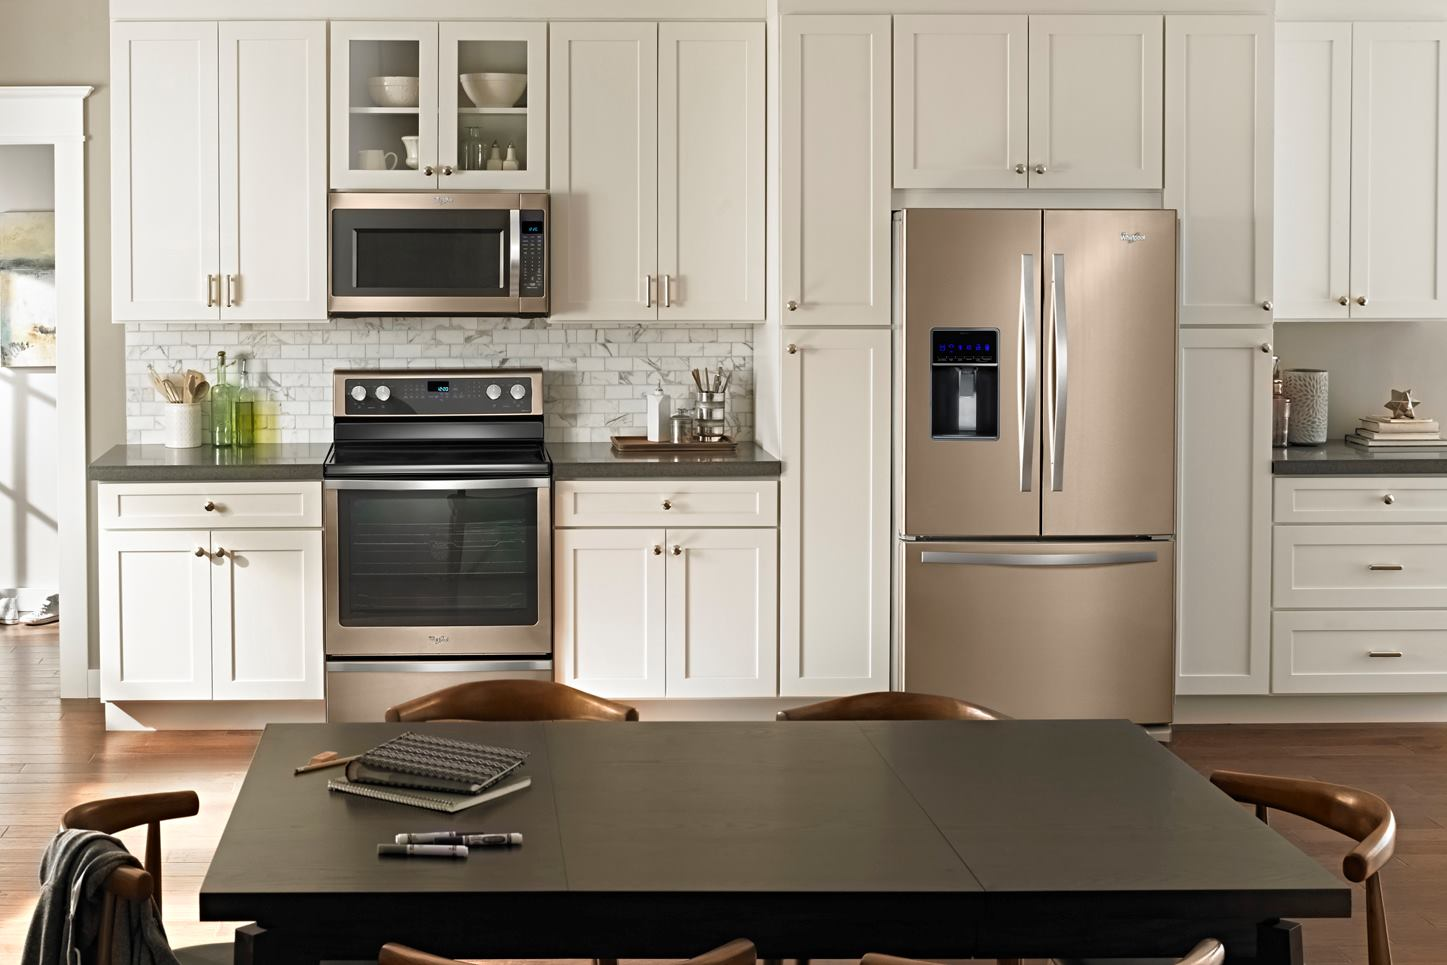 Whirlpool Revisits The Bronze Age With New Color Option | JLC Online |  Appliances, Interiors, Whirlpool